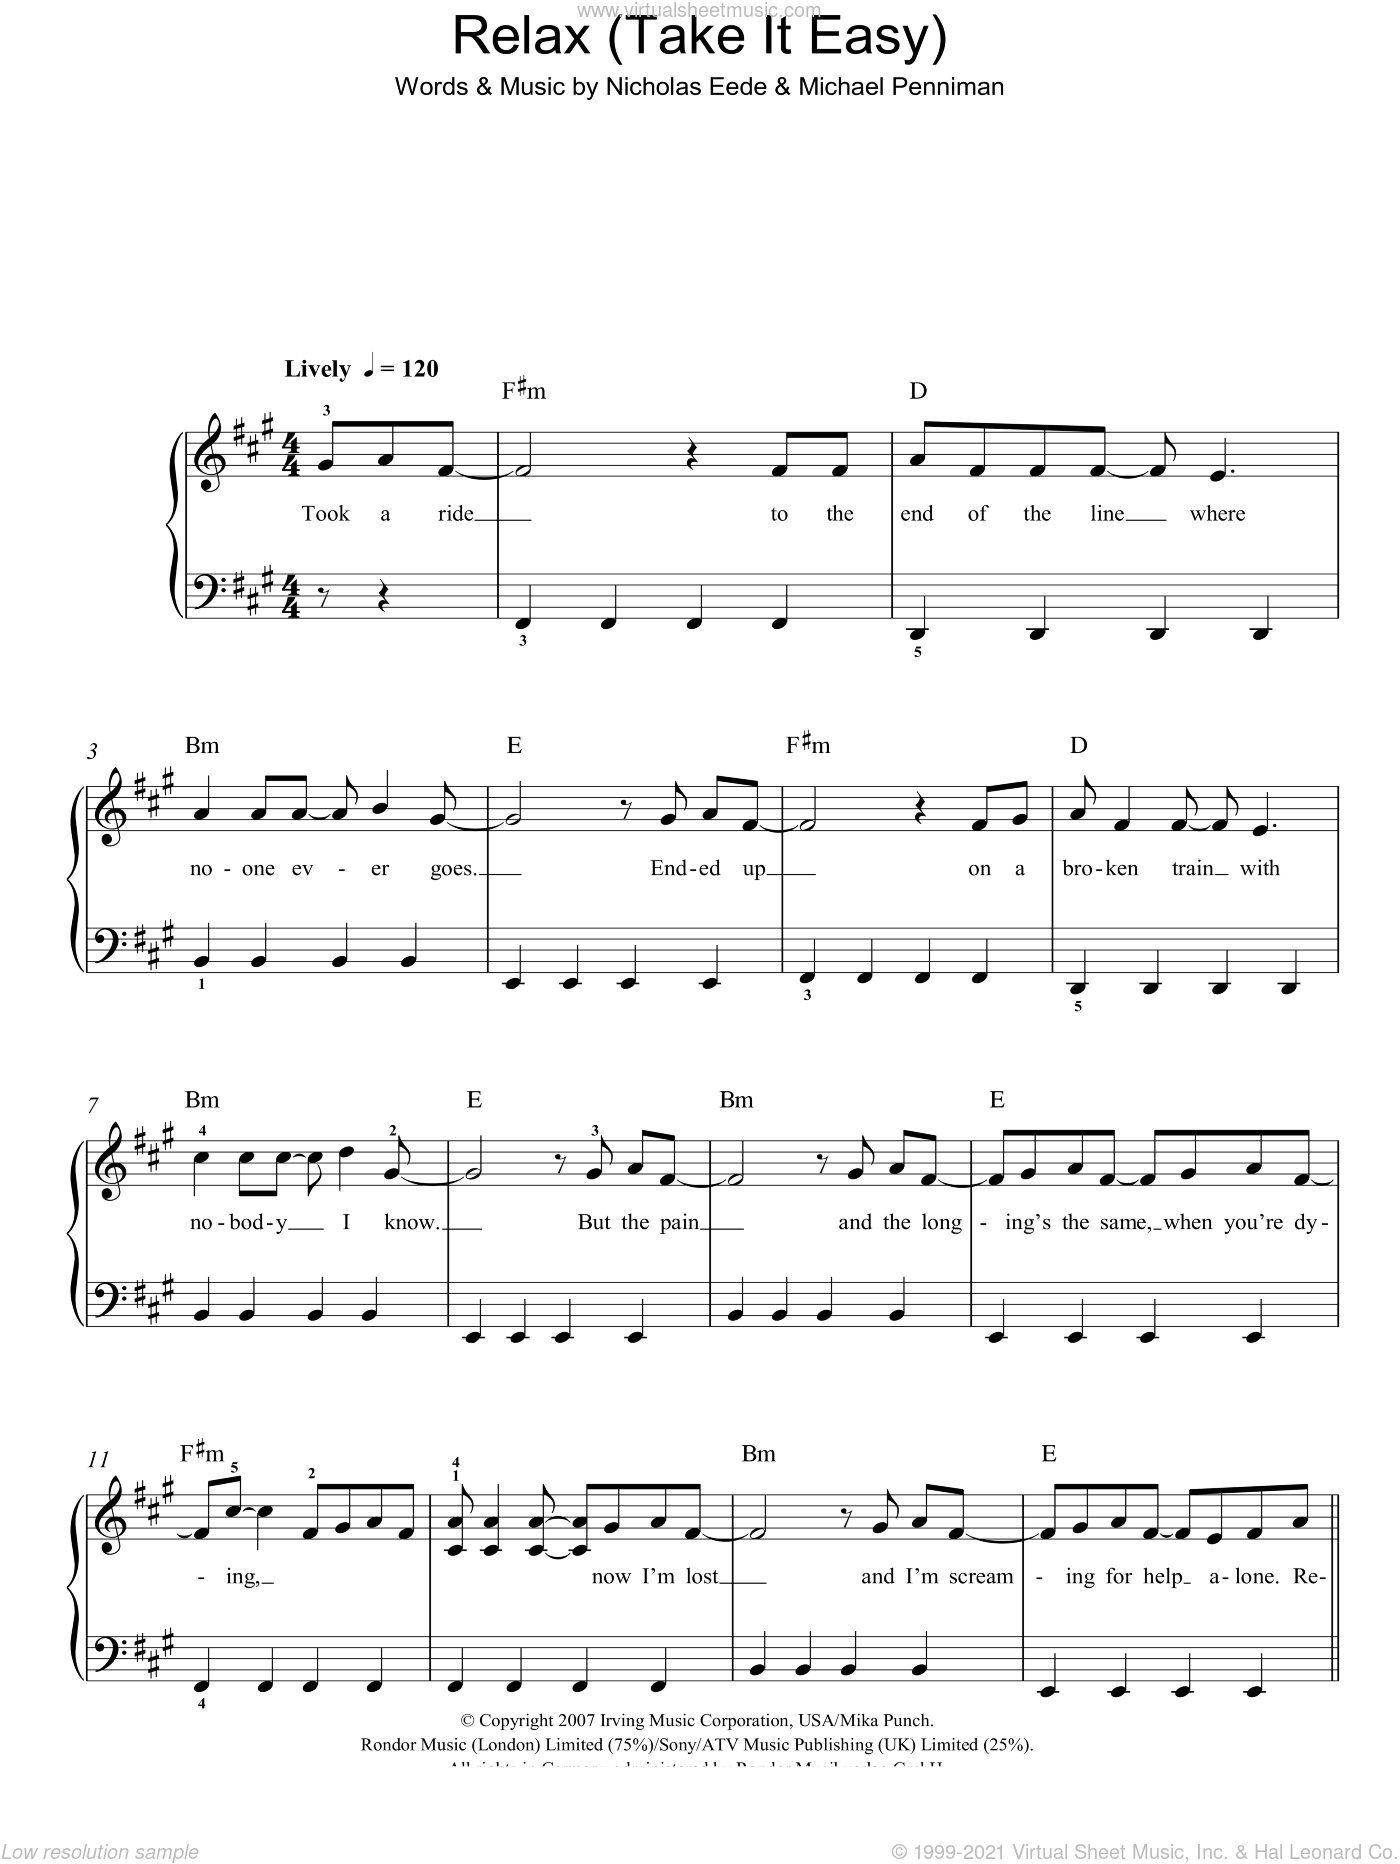 Relax (Take It Easy) sheet music for piano solo by Mika, Michael Penniman and Nick van Eede, easy skill level